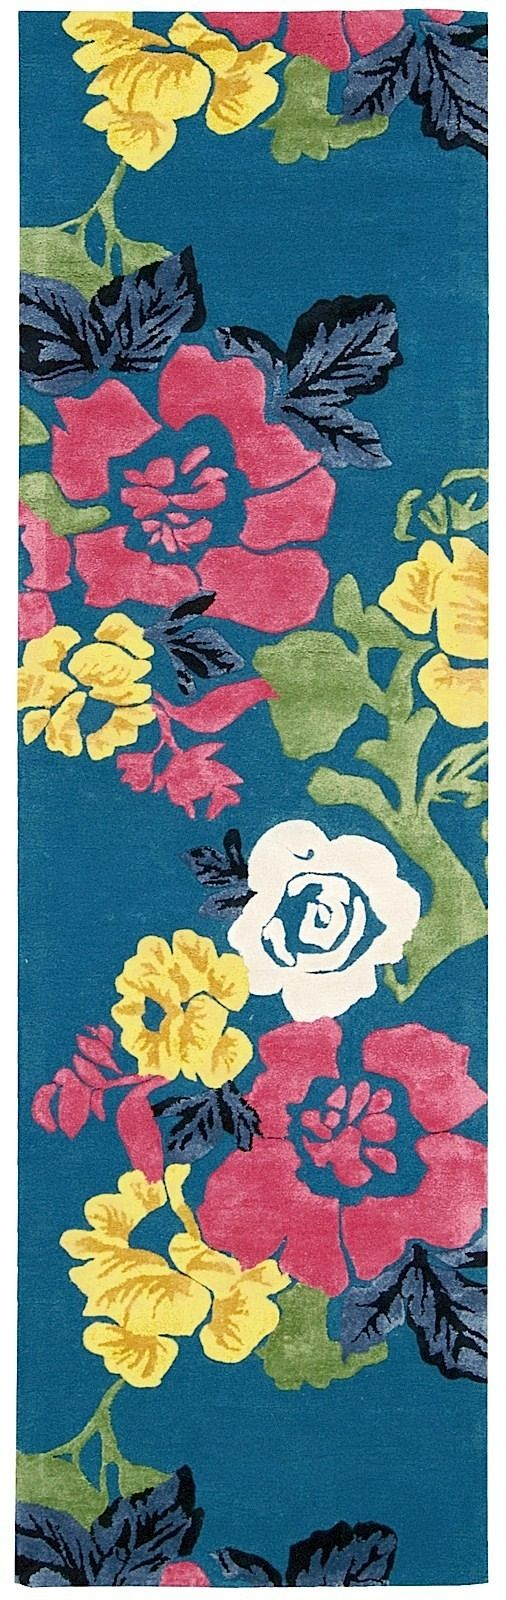 nourison wildflowers country & floral area rug collection